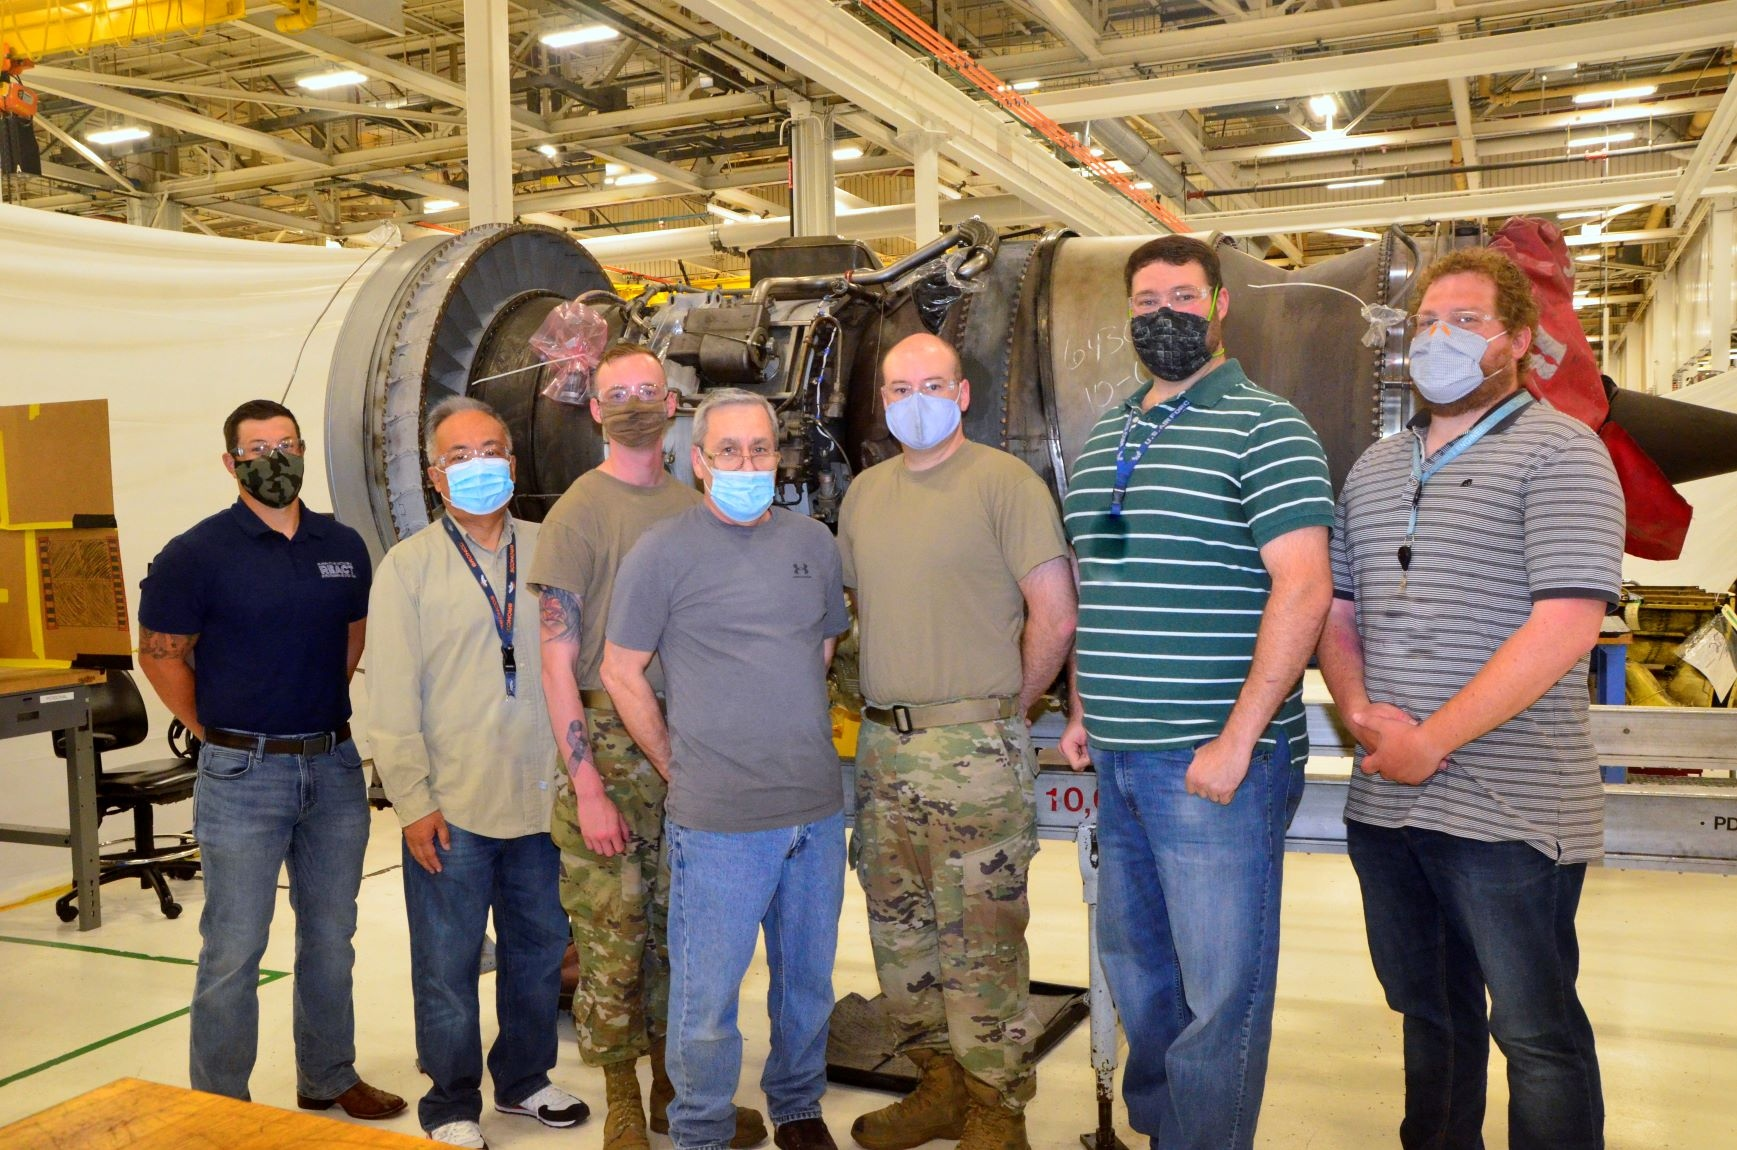 Members of the Oklahoma City Air Logistics Complex who worked on the project. Photo via Oklahoma City Air Logistics Complex.